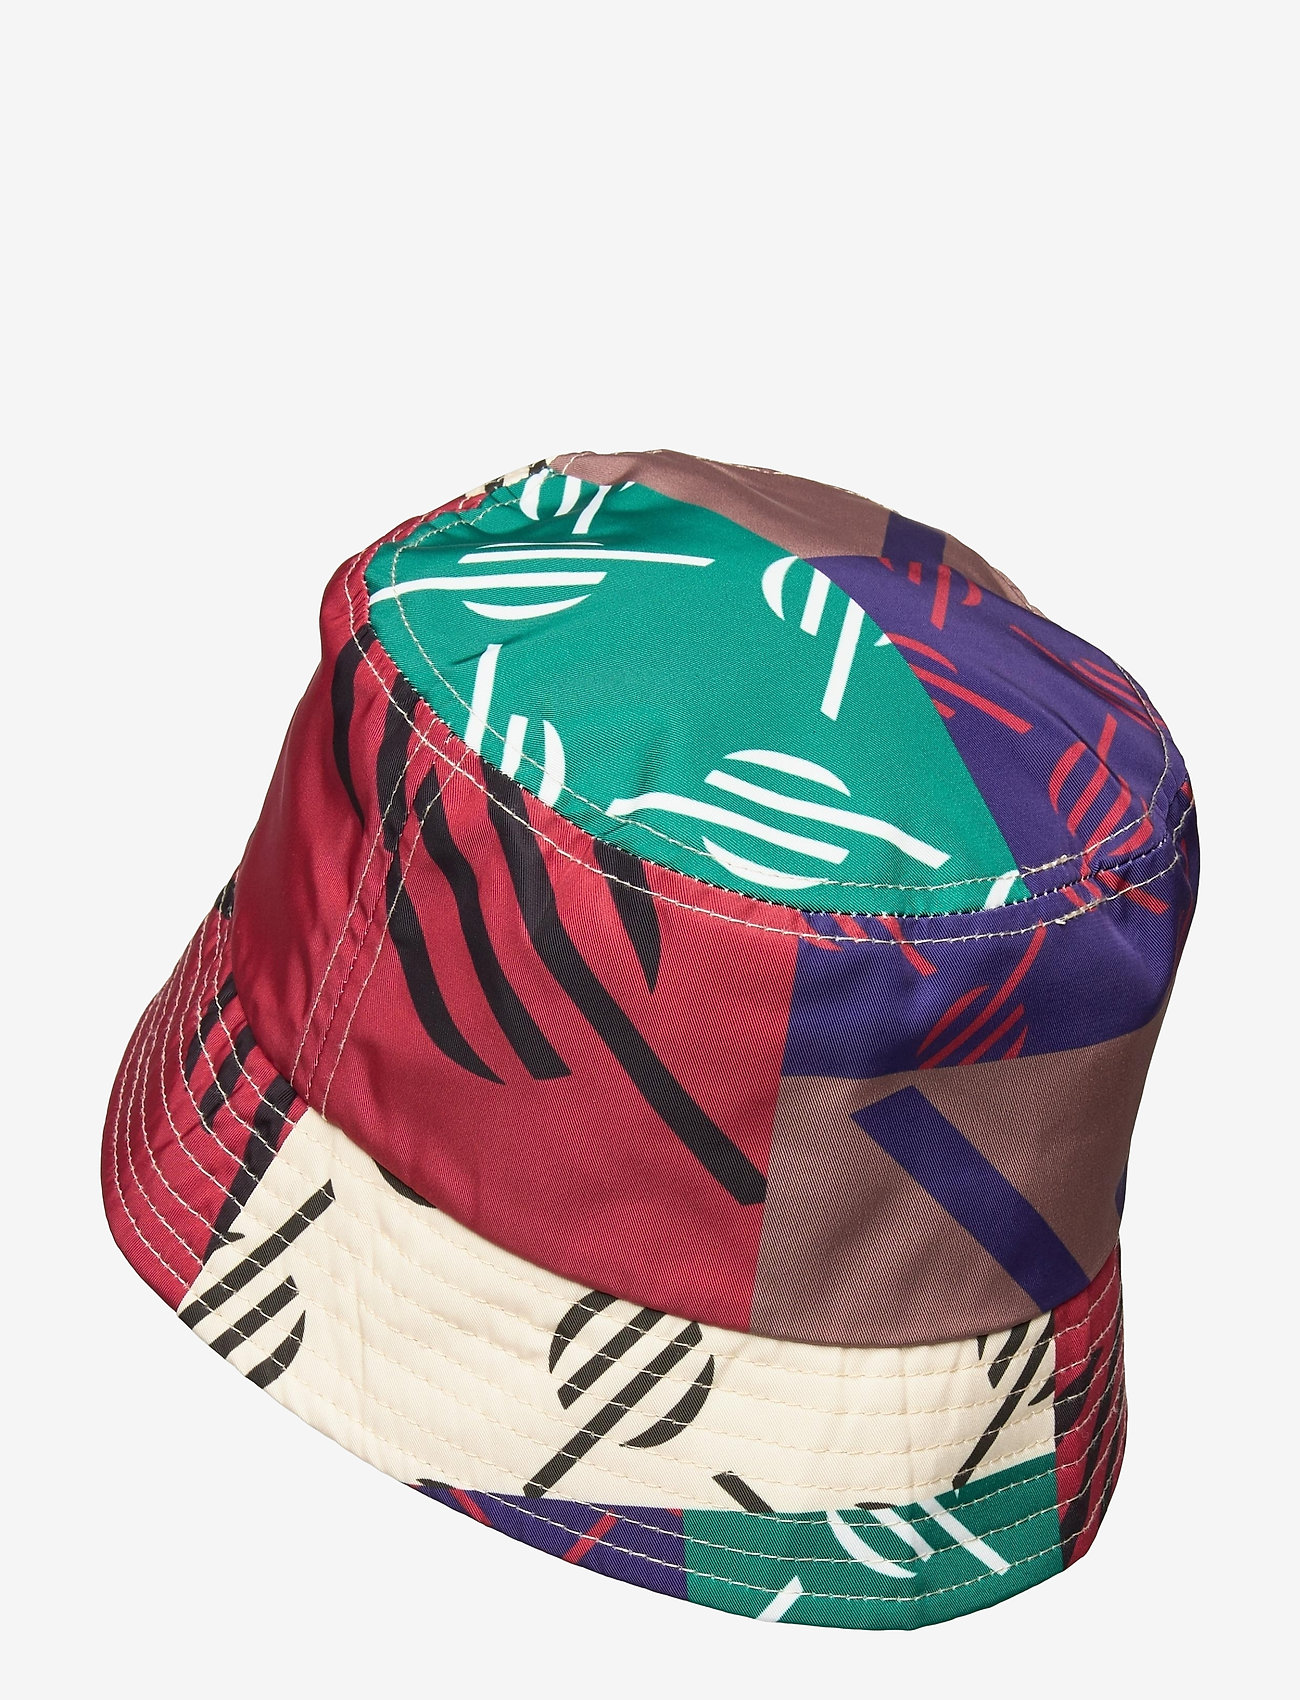 Daily Paper - repatch bucket - bonnets & casquettes - multi colored - 1